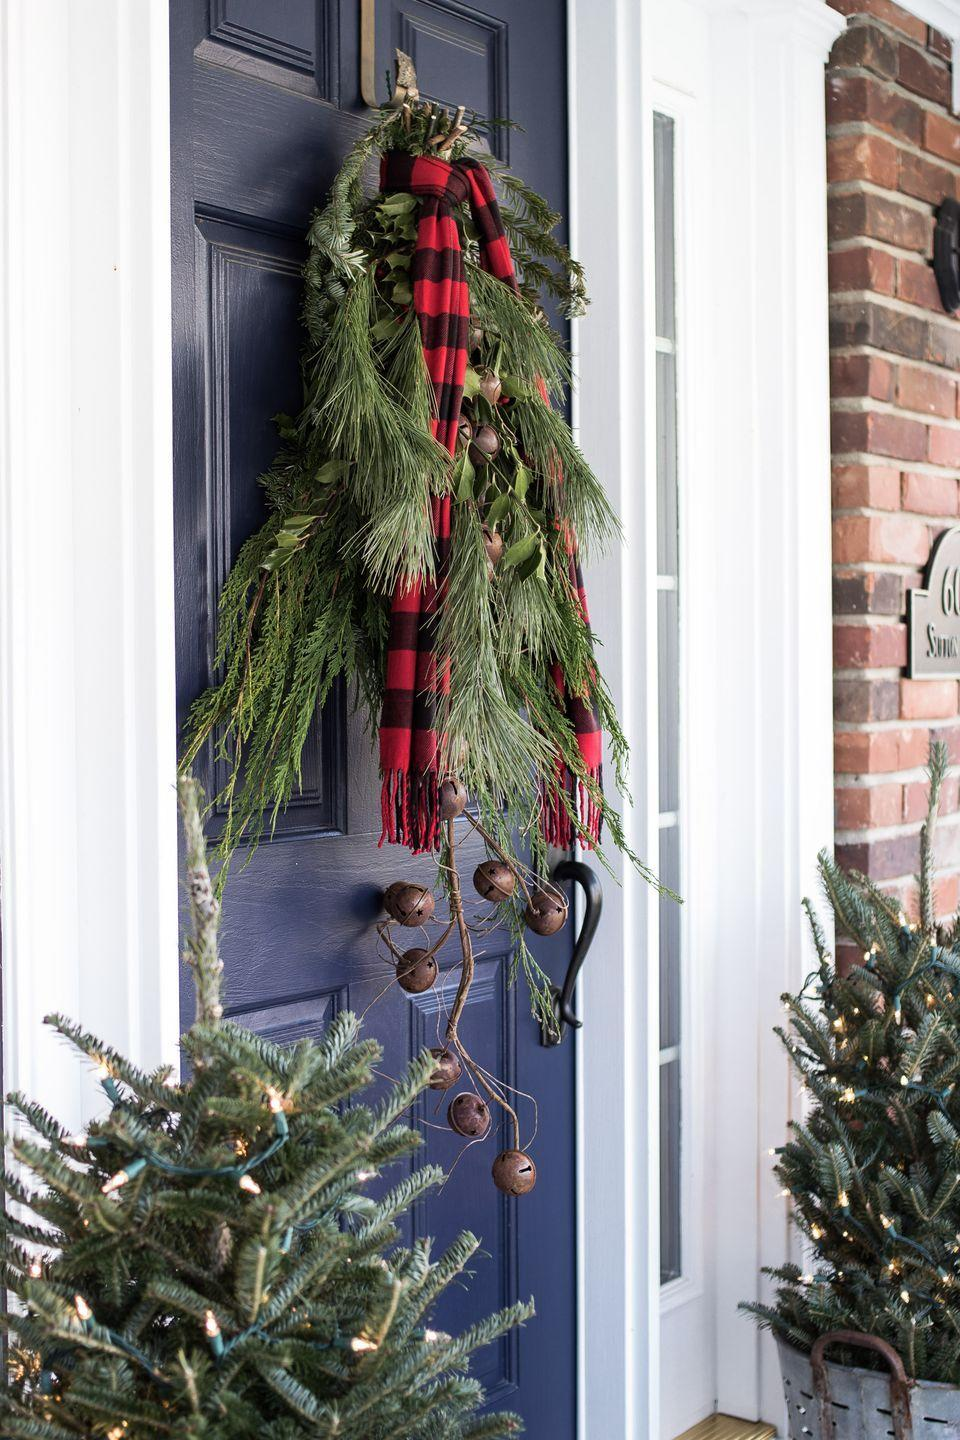 "<p>This brilliantly simple door decor from <a href=""http://www.onsuttonplace.com/2015/12/festive-frugal-christmas-porch-decor/"" rel=""nofollow noopener"" target=""_blank"" data-ylk=""slk:On Sutton Place"" class=""link rapid-noclick-resp"">On Sutton Place</a> features fresh pine bunches in lieu of a wreath, accented with a plaid scarf and a string of bells. </p>"